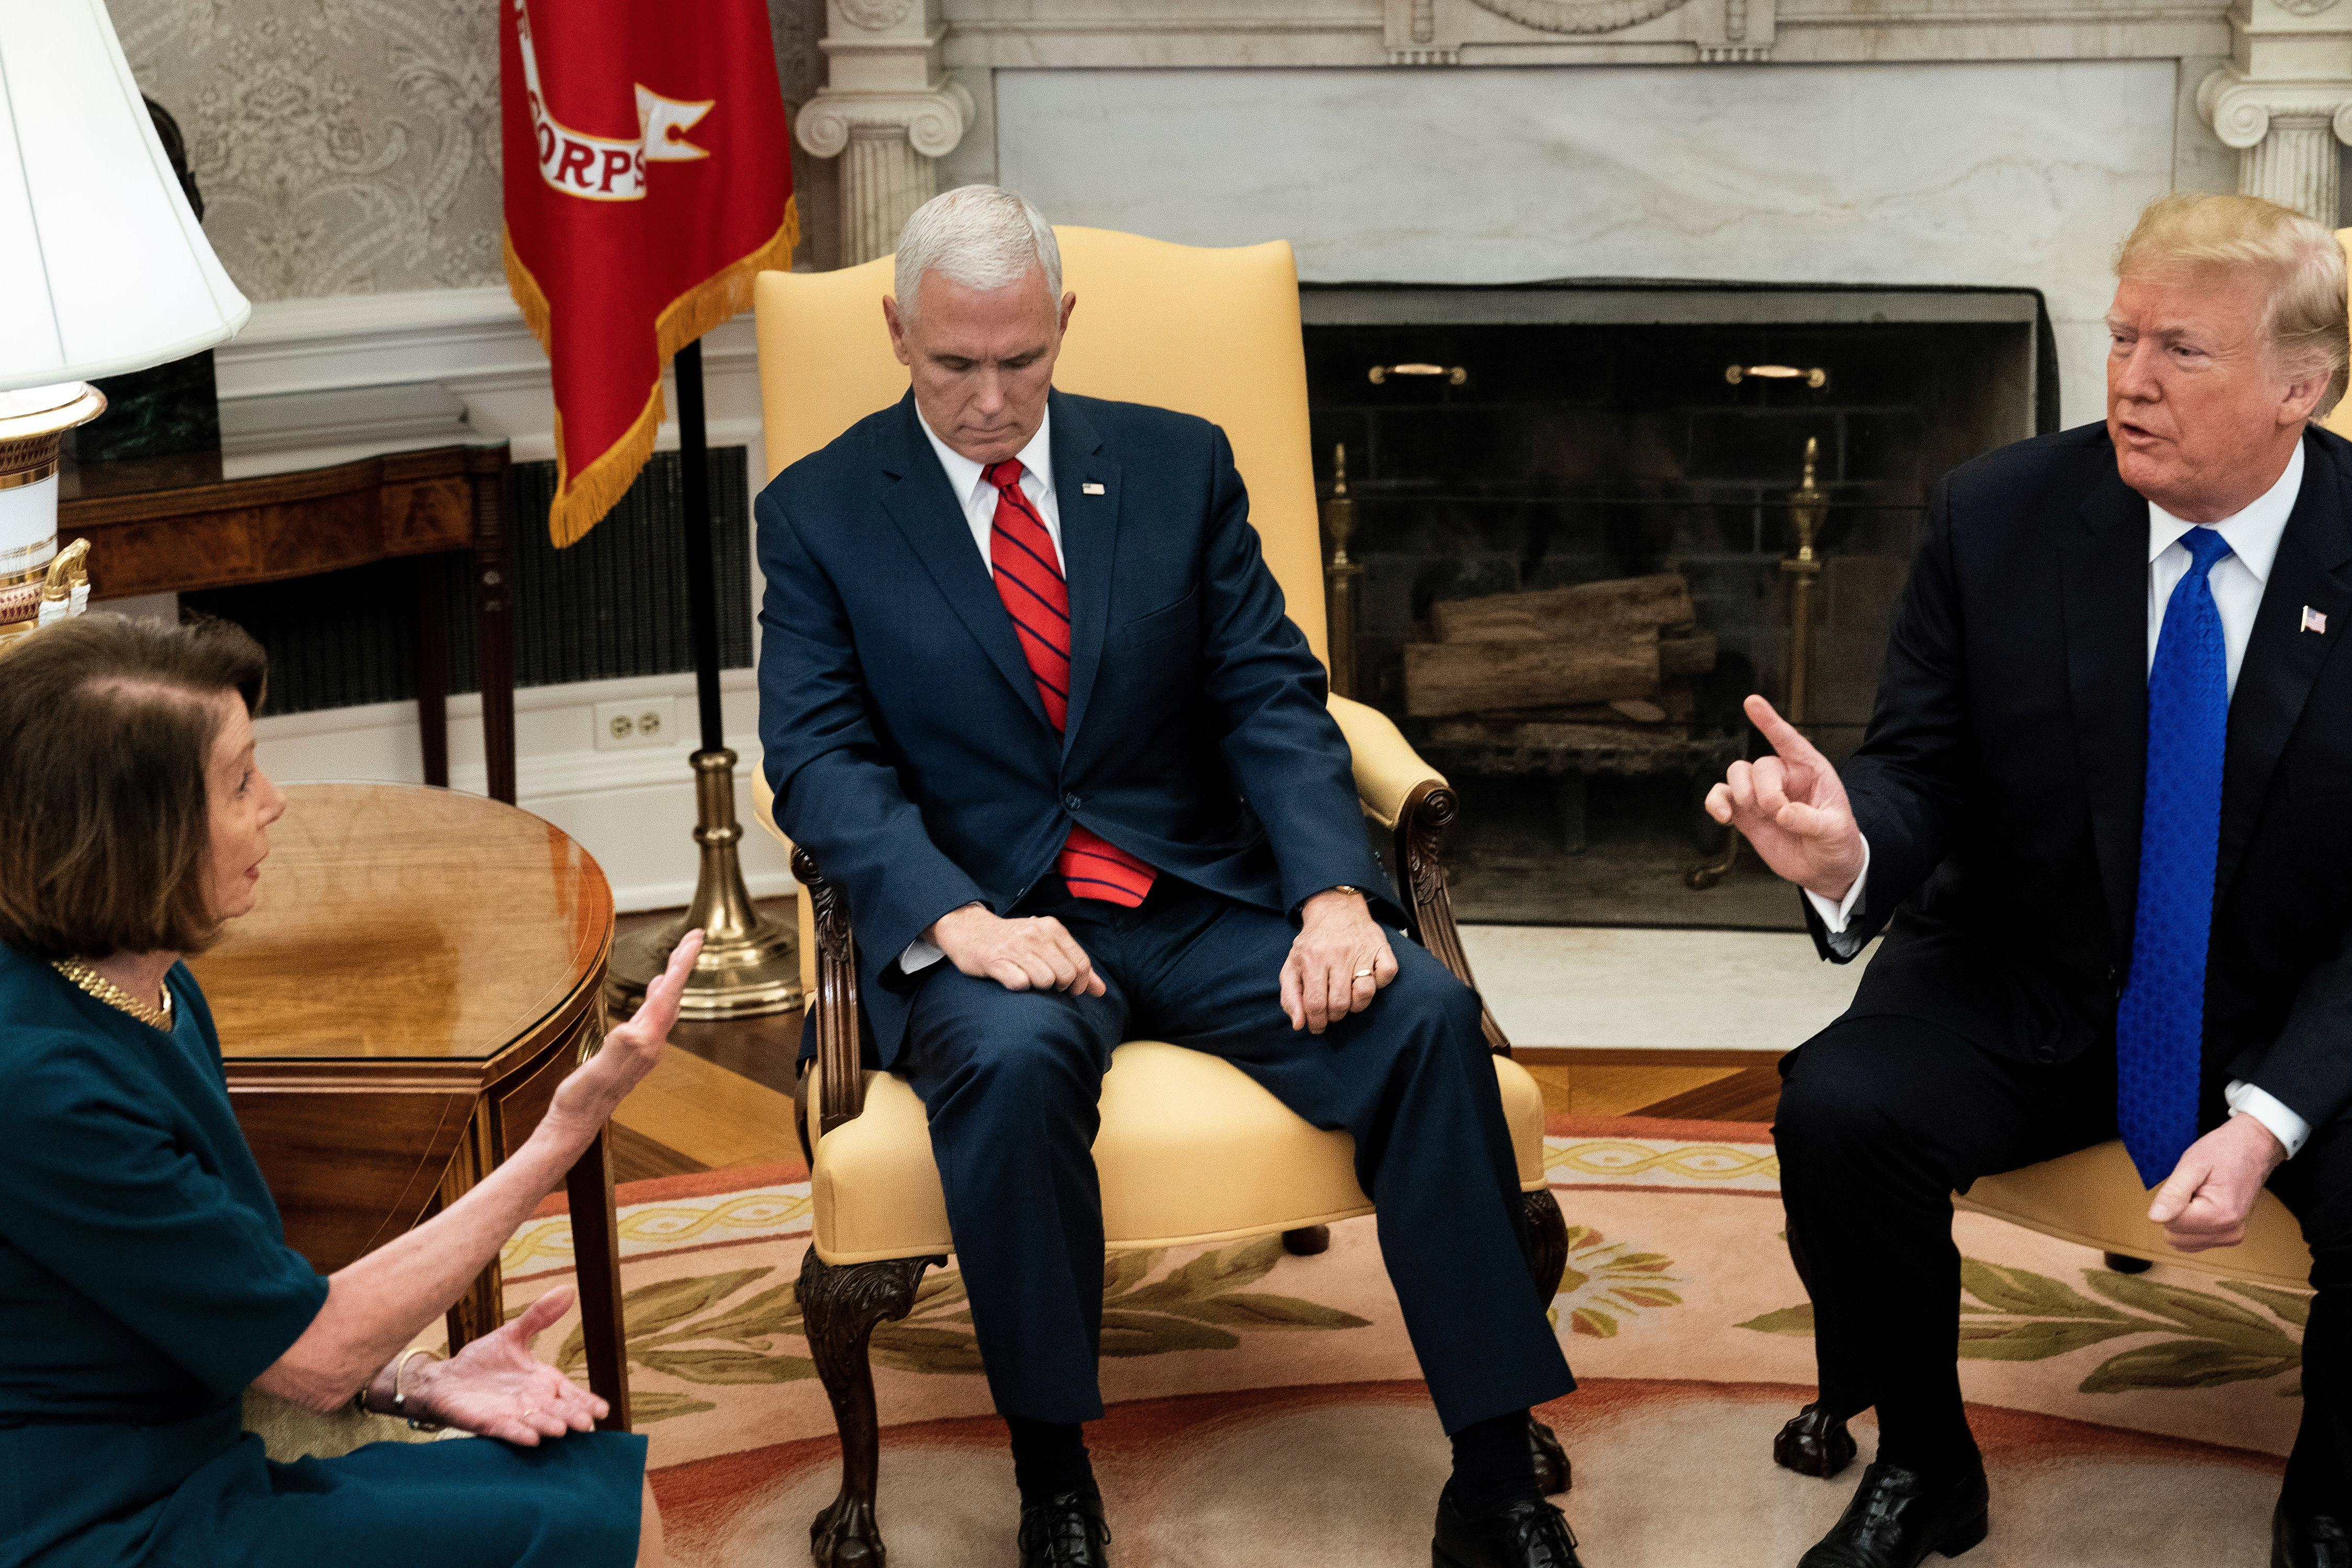 Mike Pence looks intently at his own hand as Nancy Pelosi and Donald Trump talk across him animatedly.